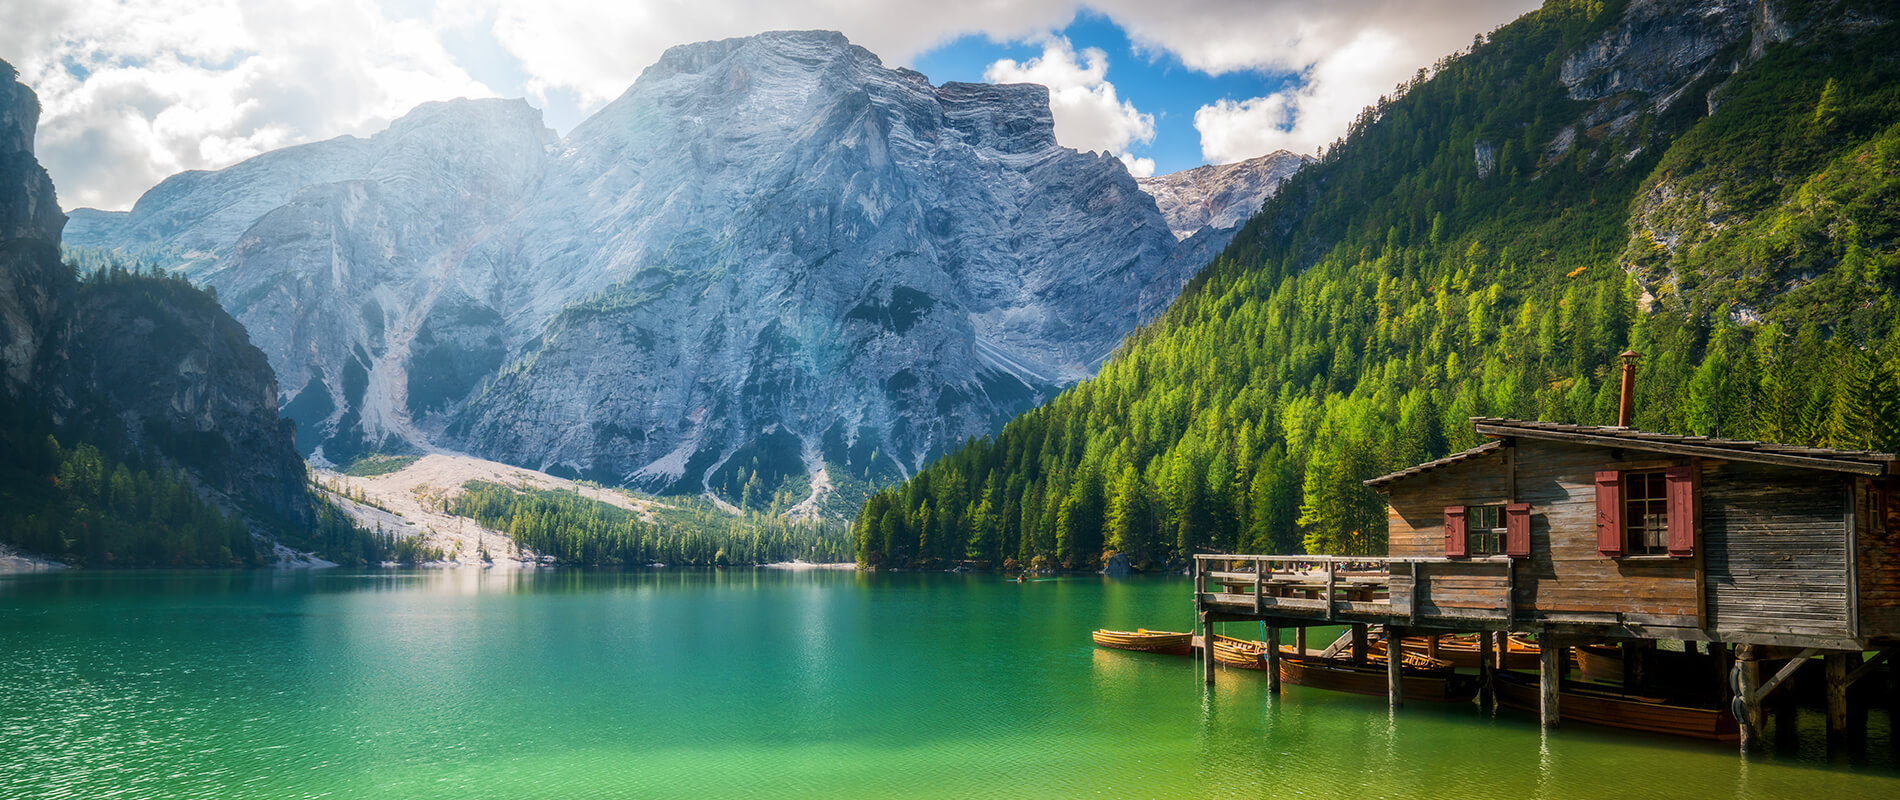 Pragser Wildsee, a jewel nestled in the heart of the Dolomites